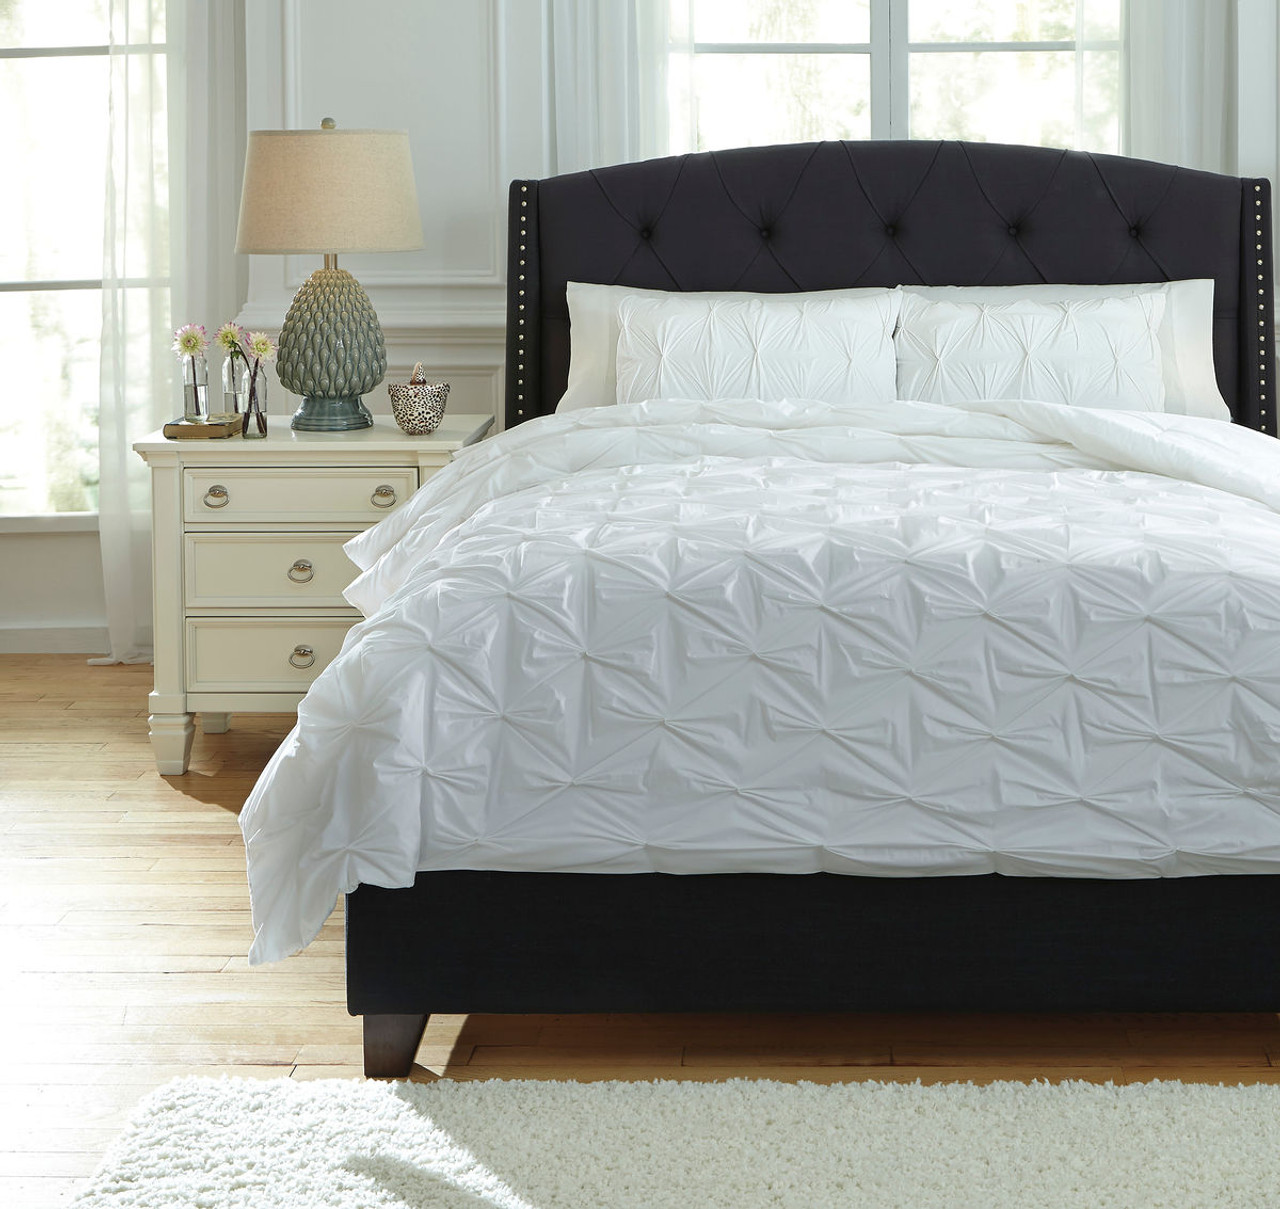 The Rimy White King Comforter Set Available At Royal Star Furniture Serving St Paul Mn